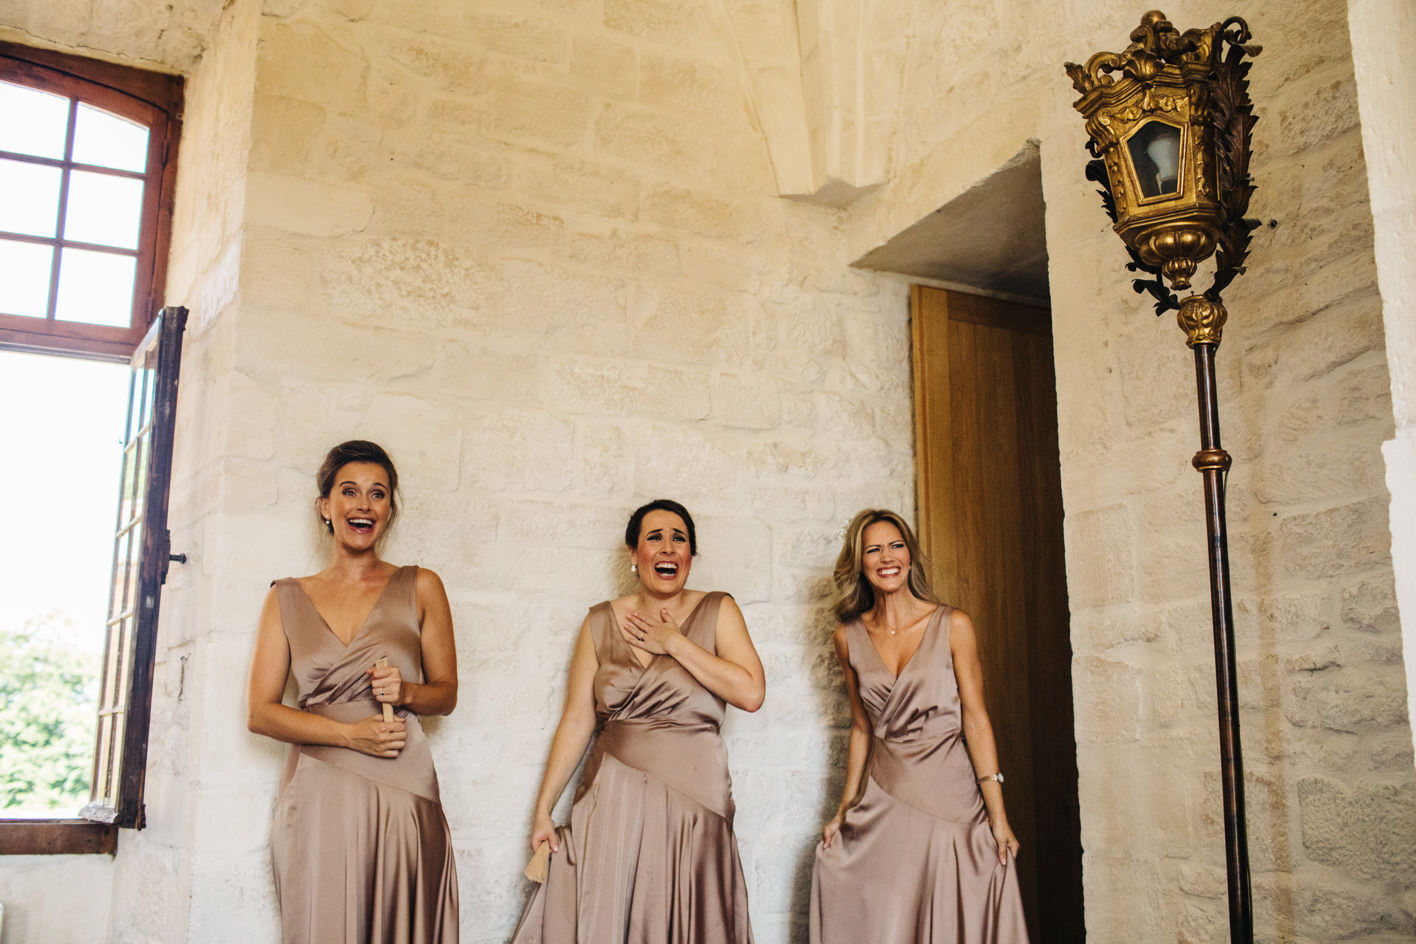 bridesmaid reaction to seeing bride in dress